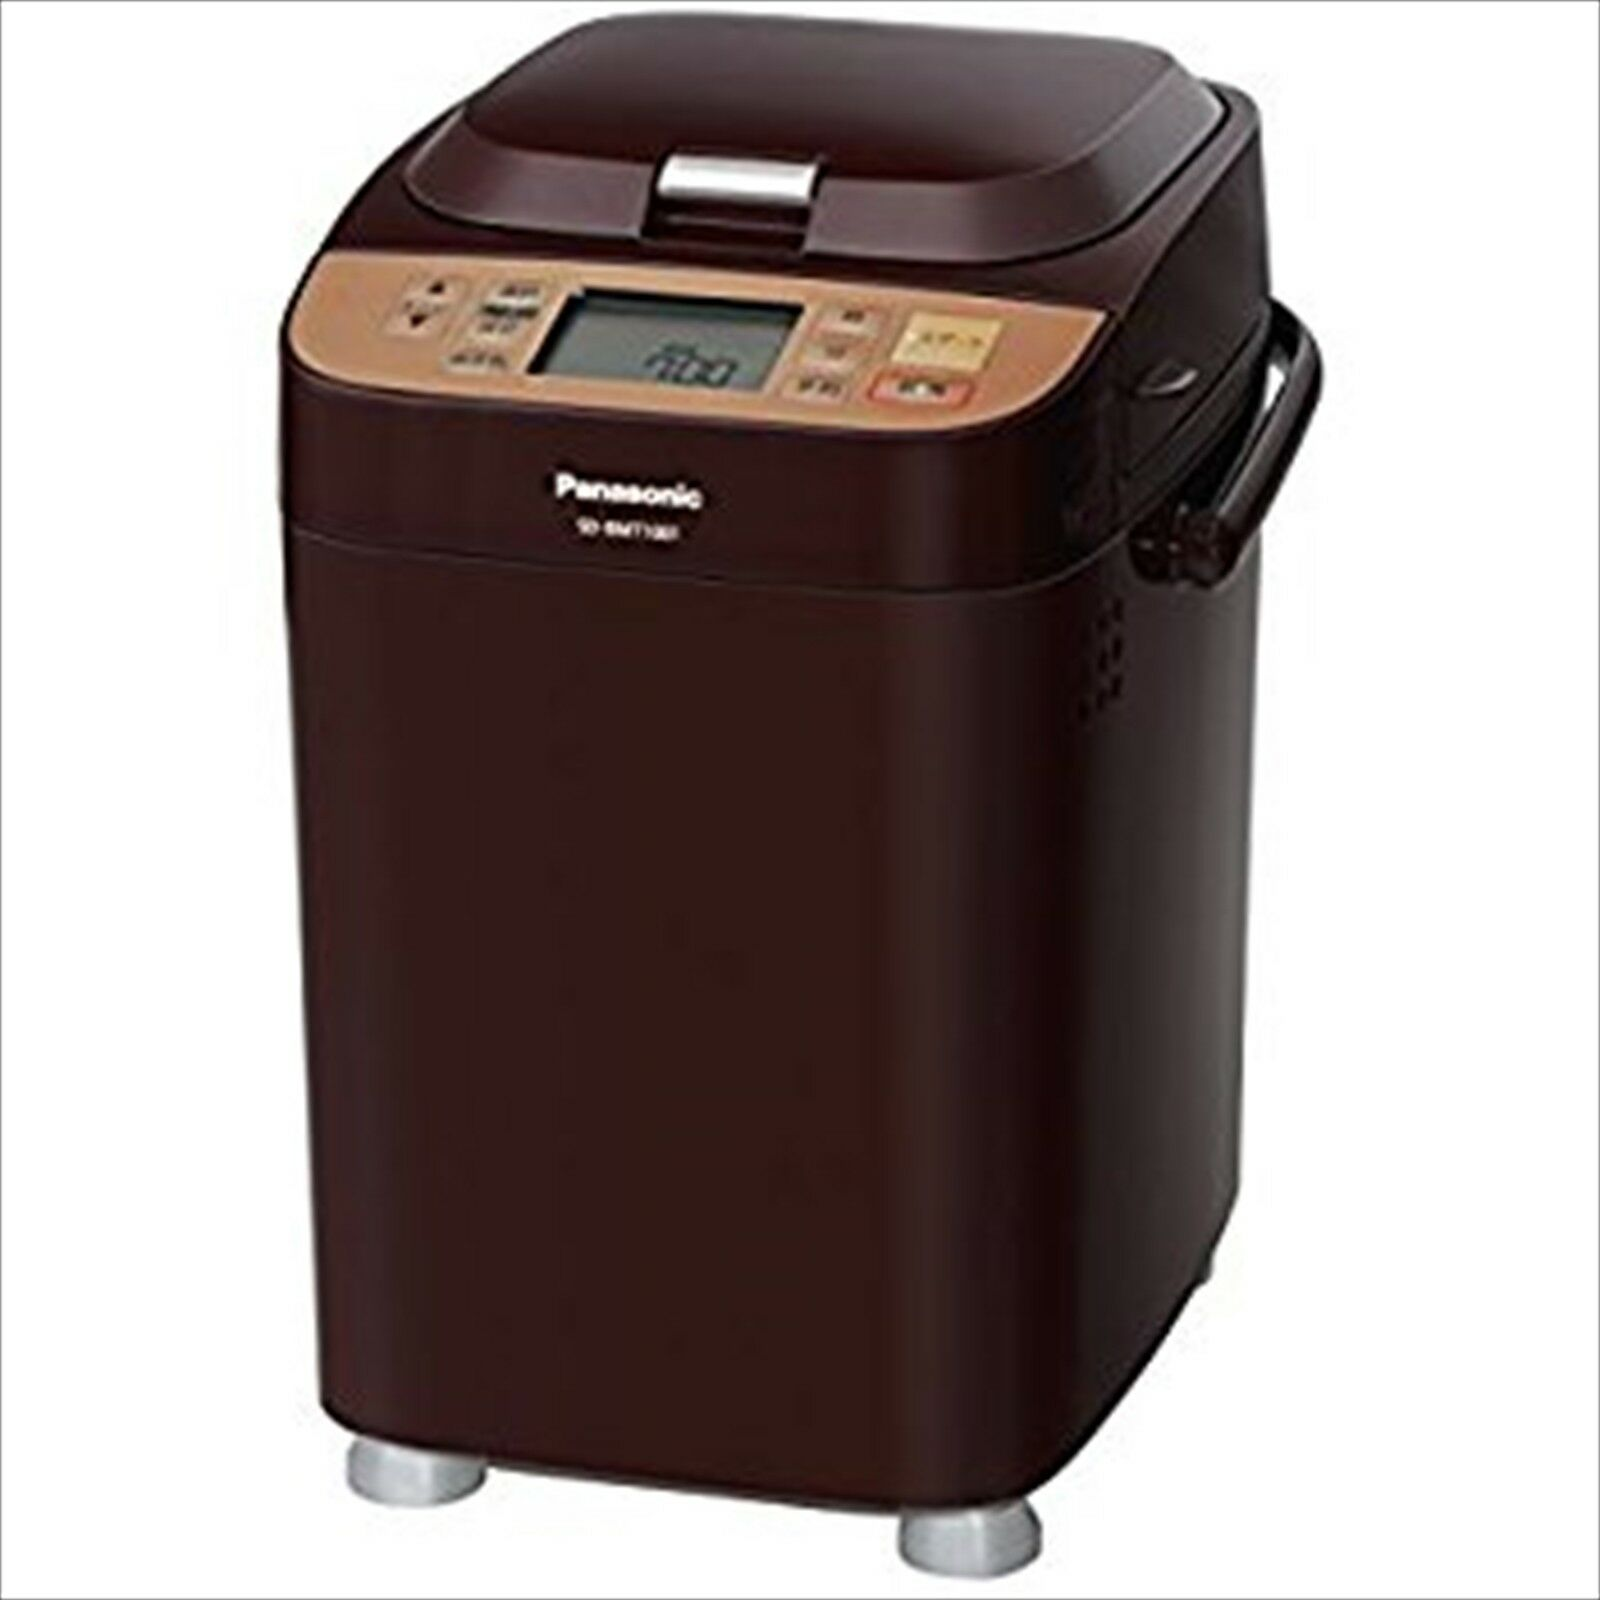 Panasonic Home Bakery 1 LOAF type Marron SD-BMT1001-T F S Japan NEW